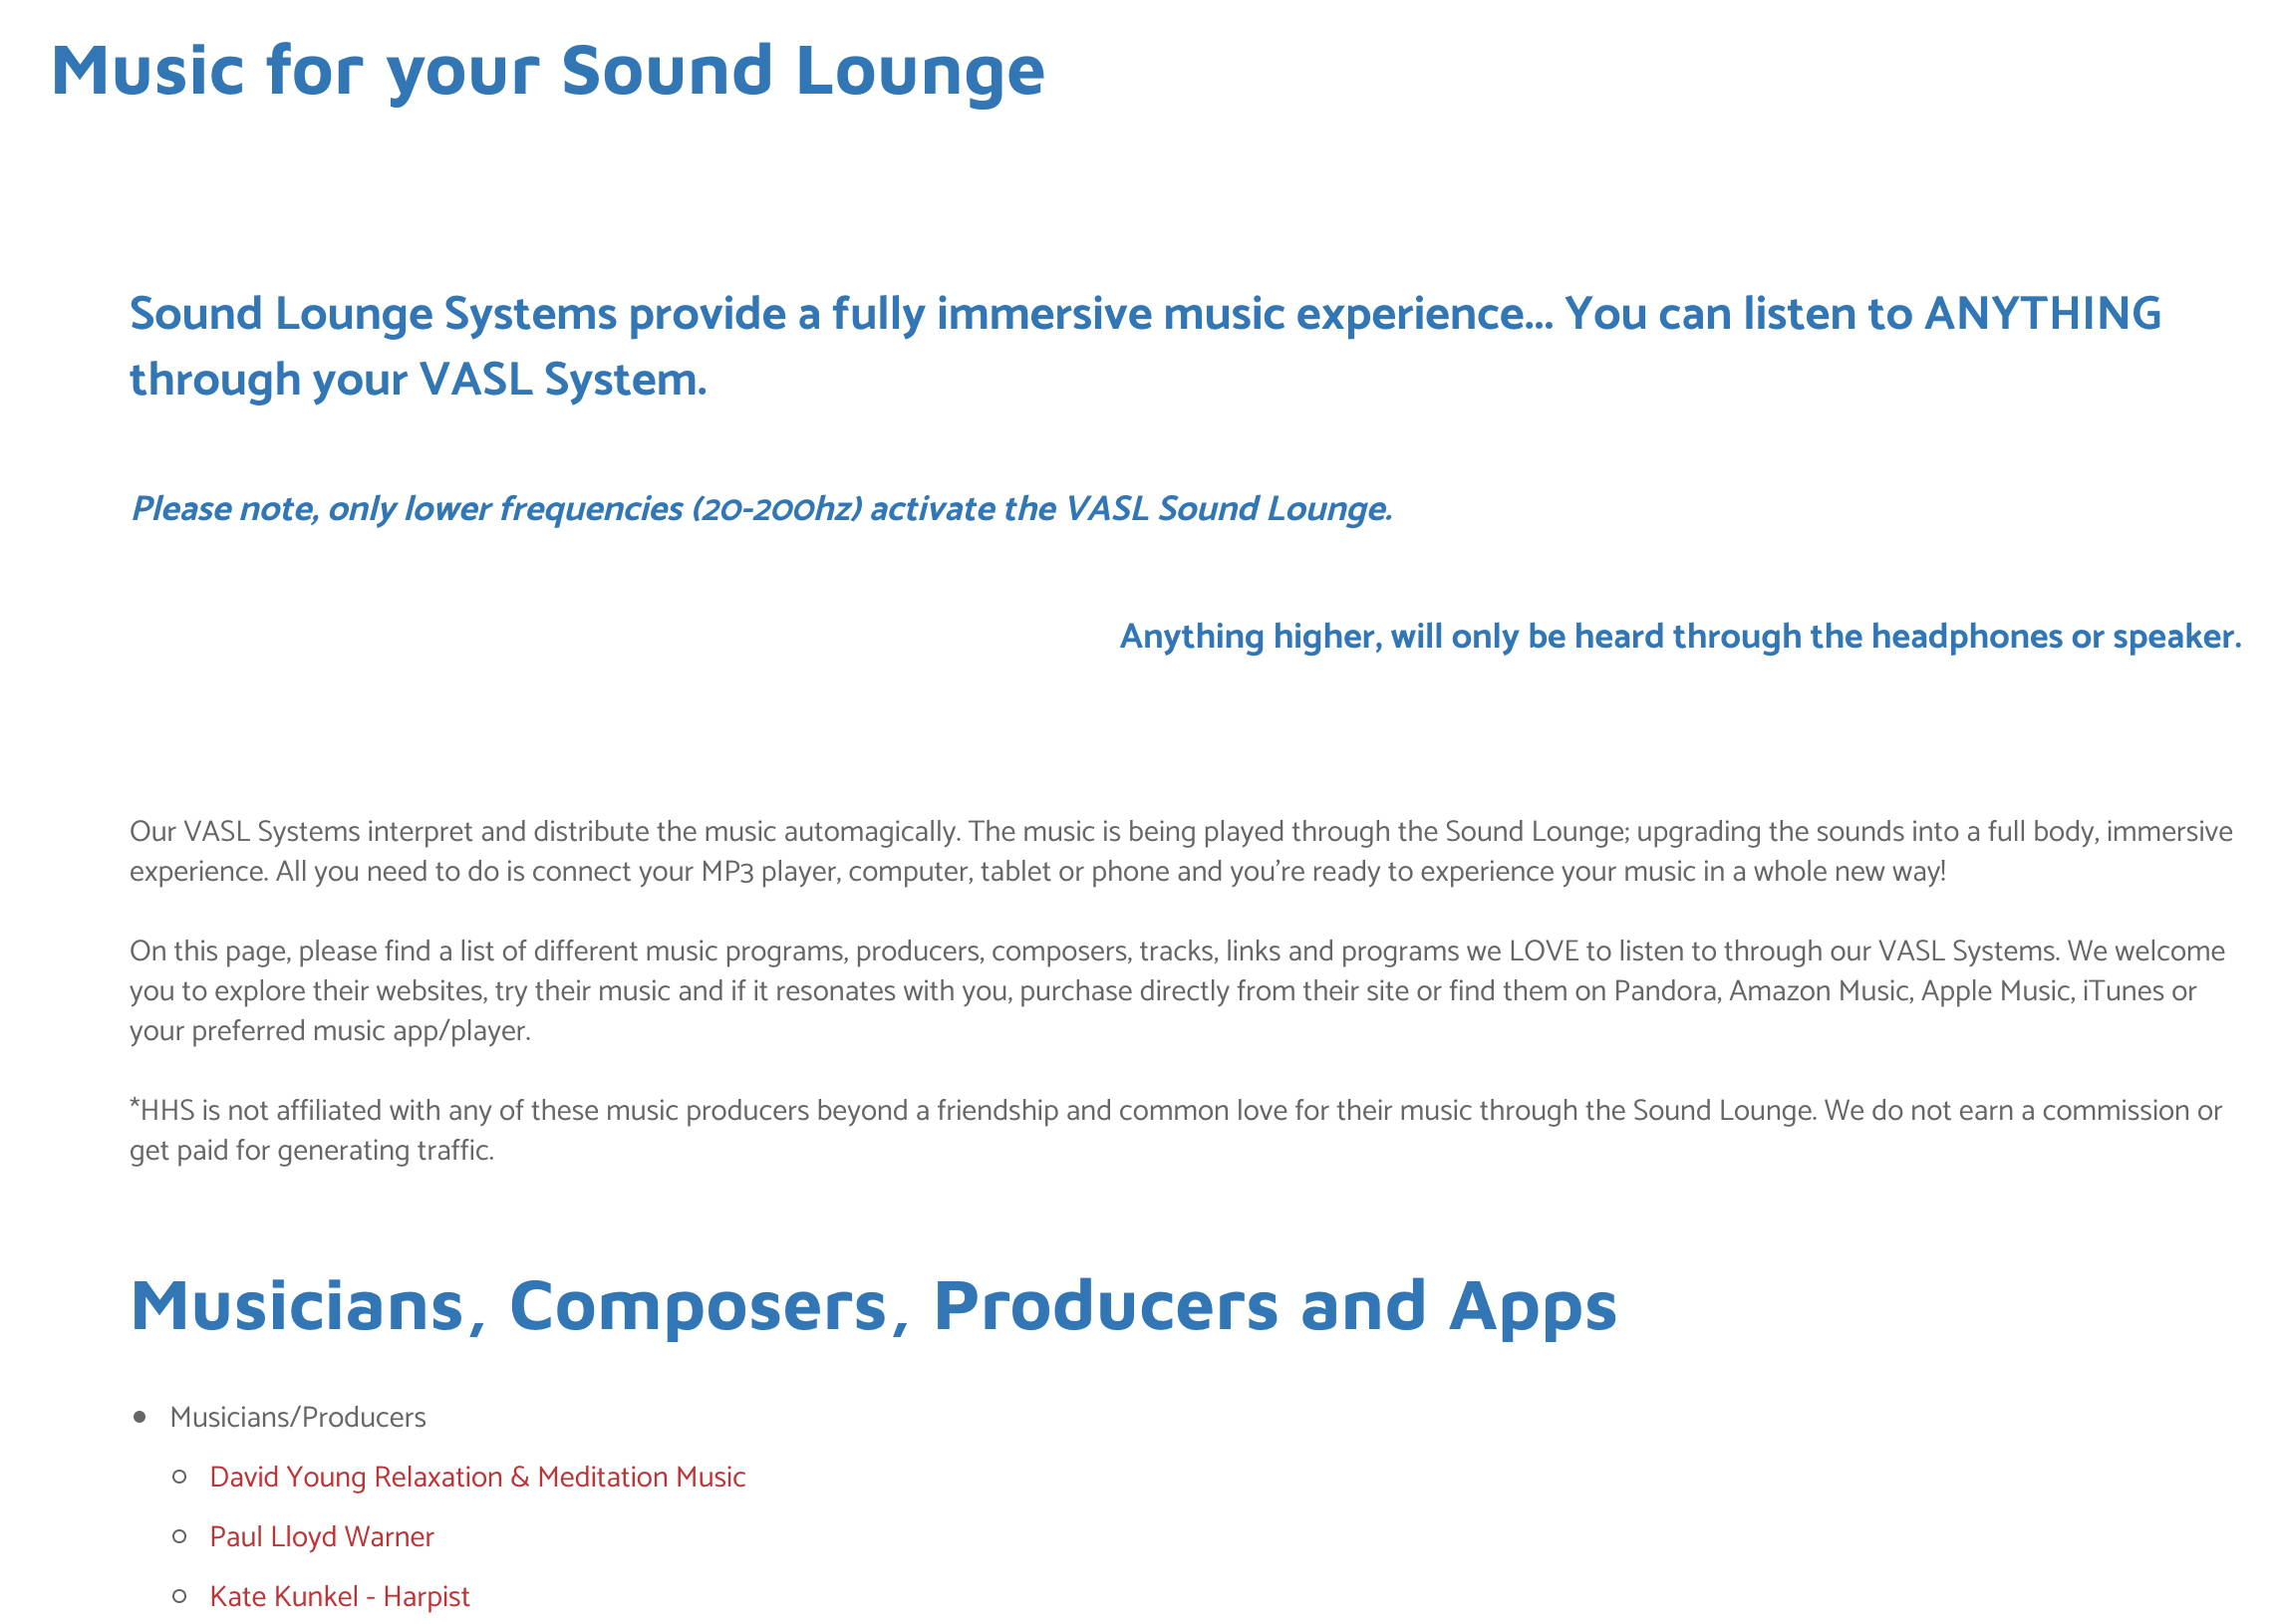 Music for your Sound Lounge